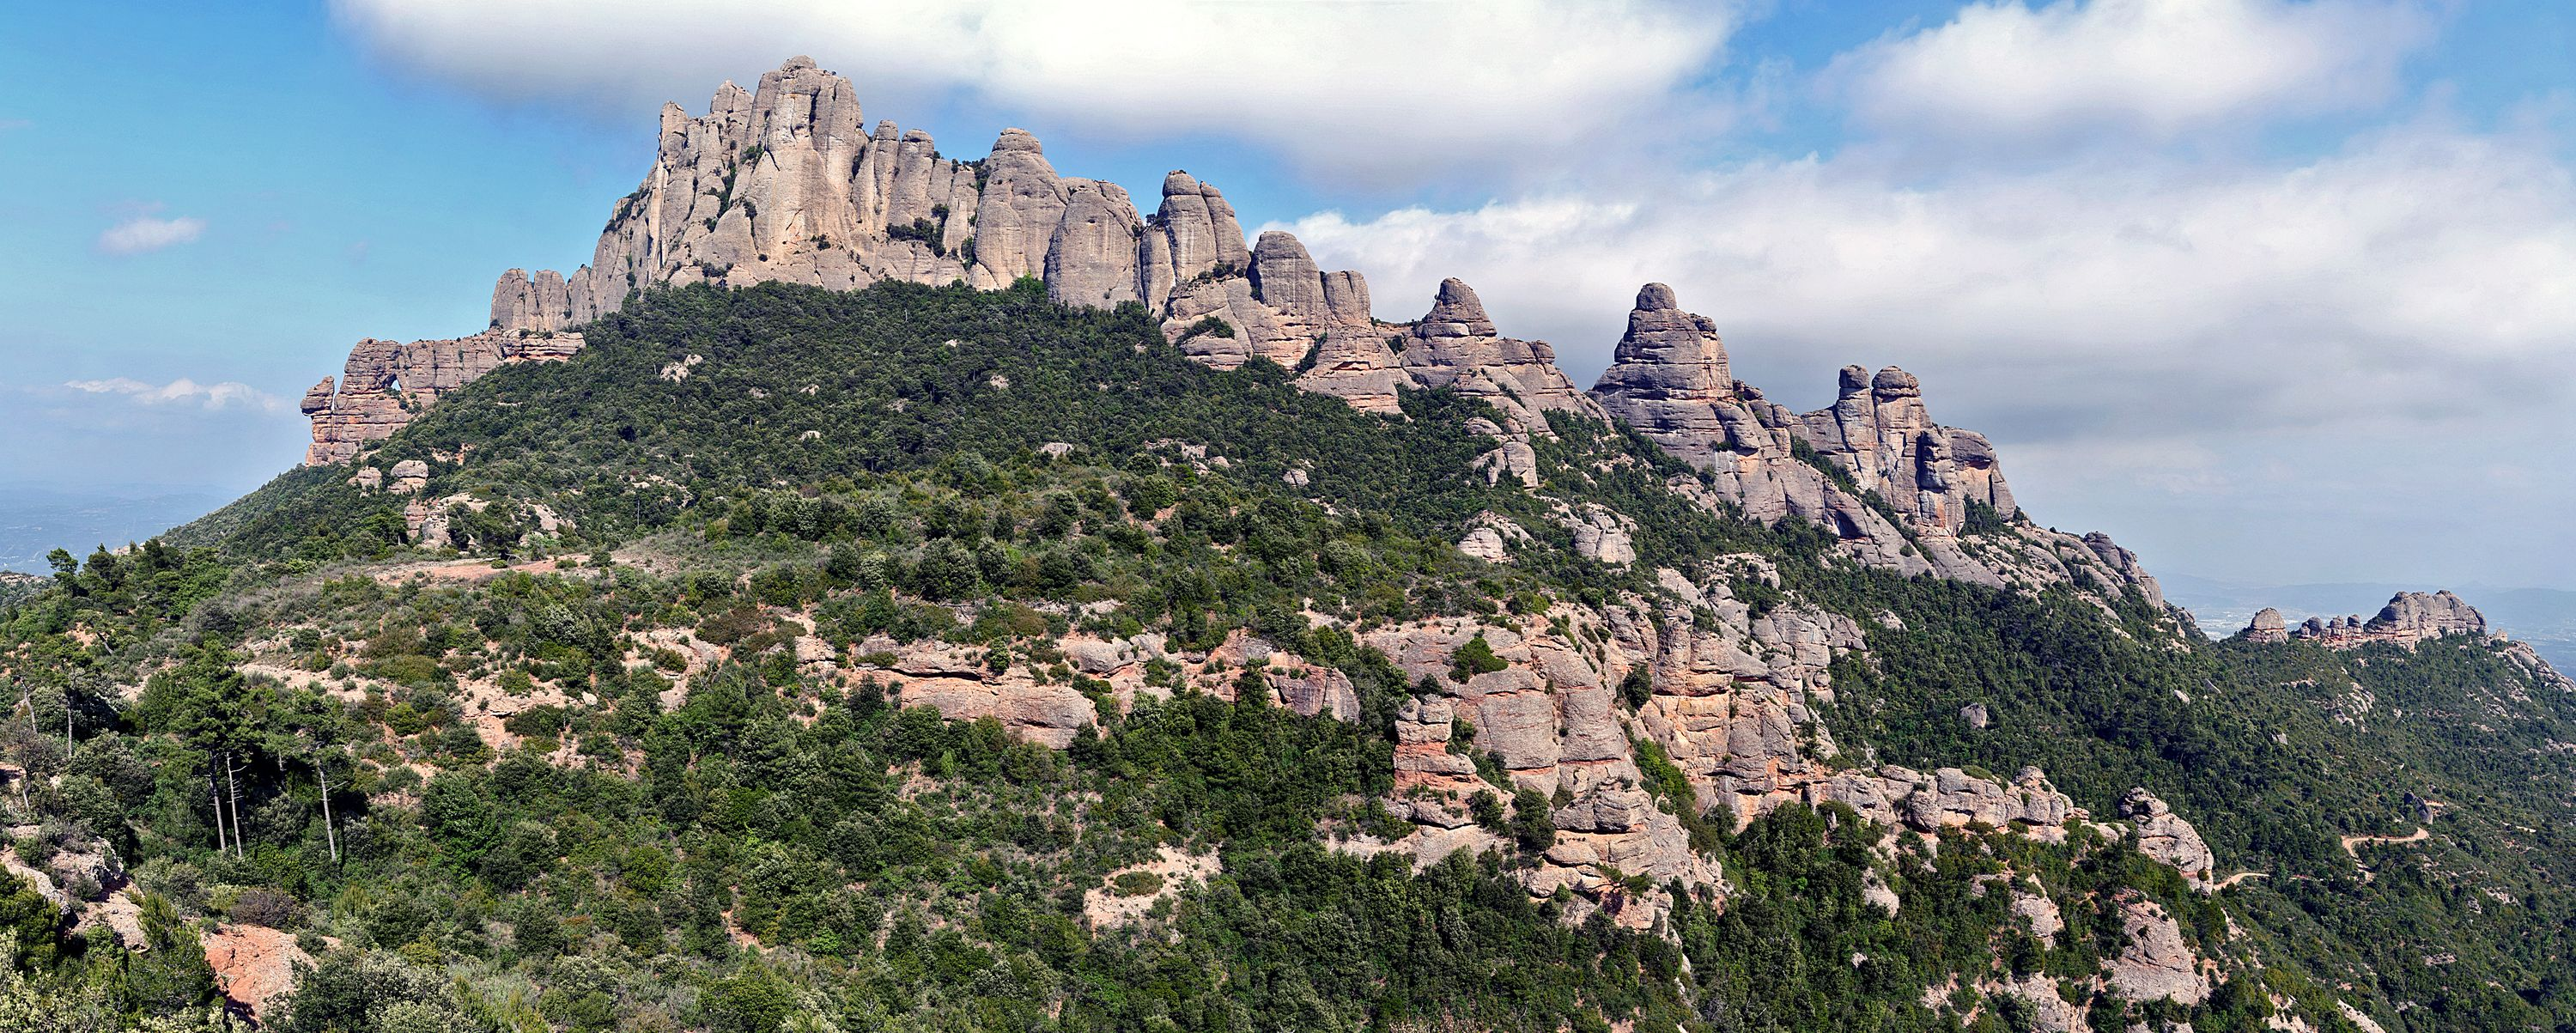 Sun in the mountains of Montserrat, Catalonia, (Panoramic view).  24 photos with a Canon EOS 1000D and a Canon 50 mm 1:1.8 II.  Photo Details: ISO 100 - F8 - 1/250